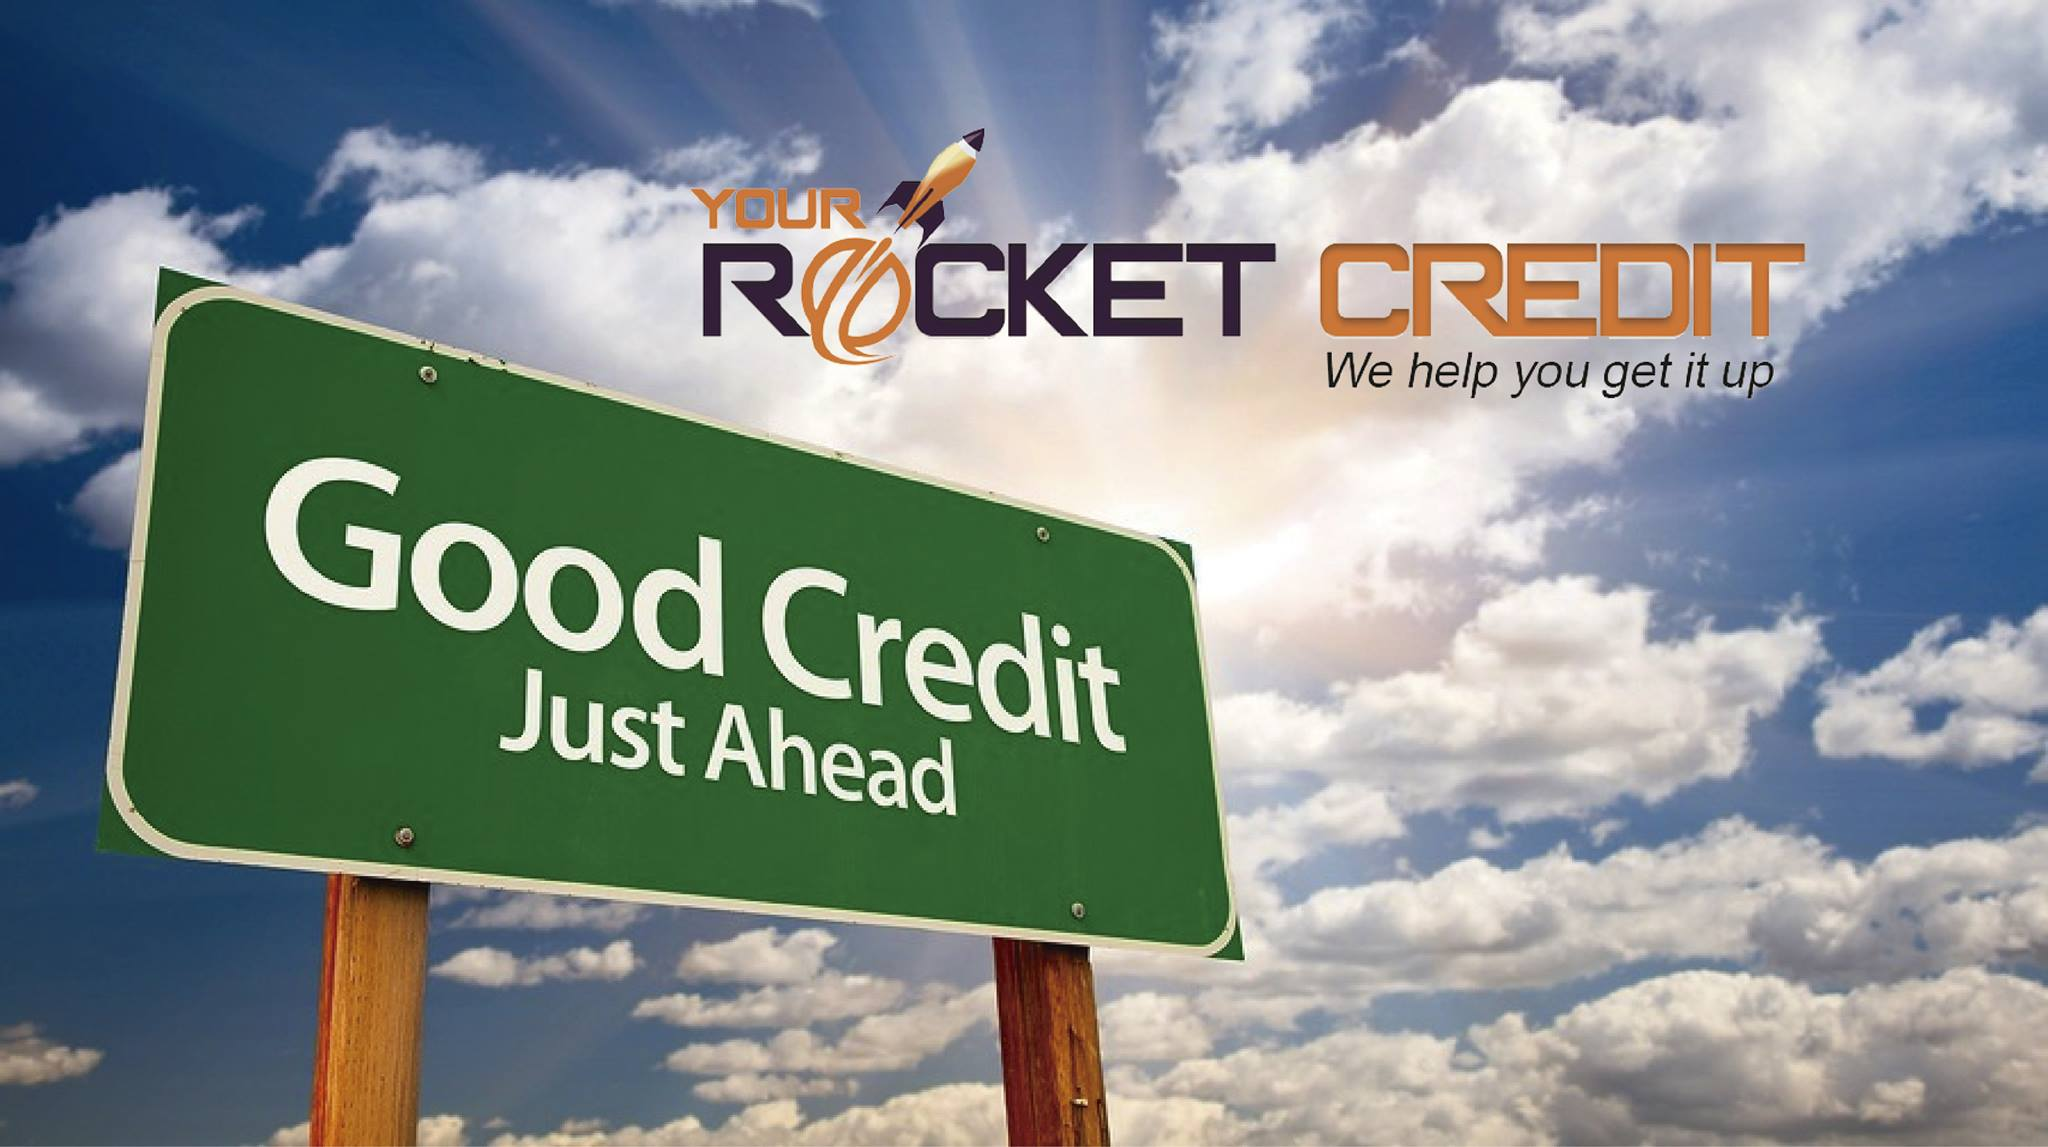 Your Rocket Credit